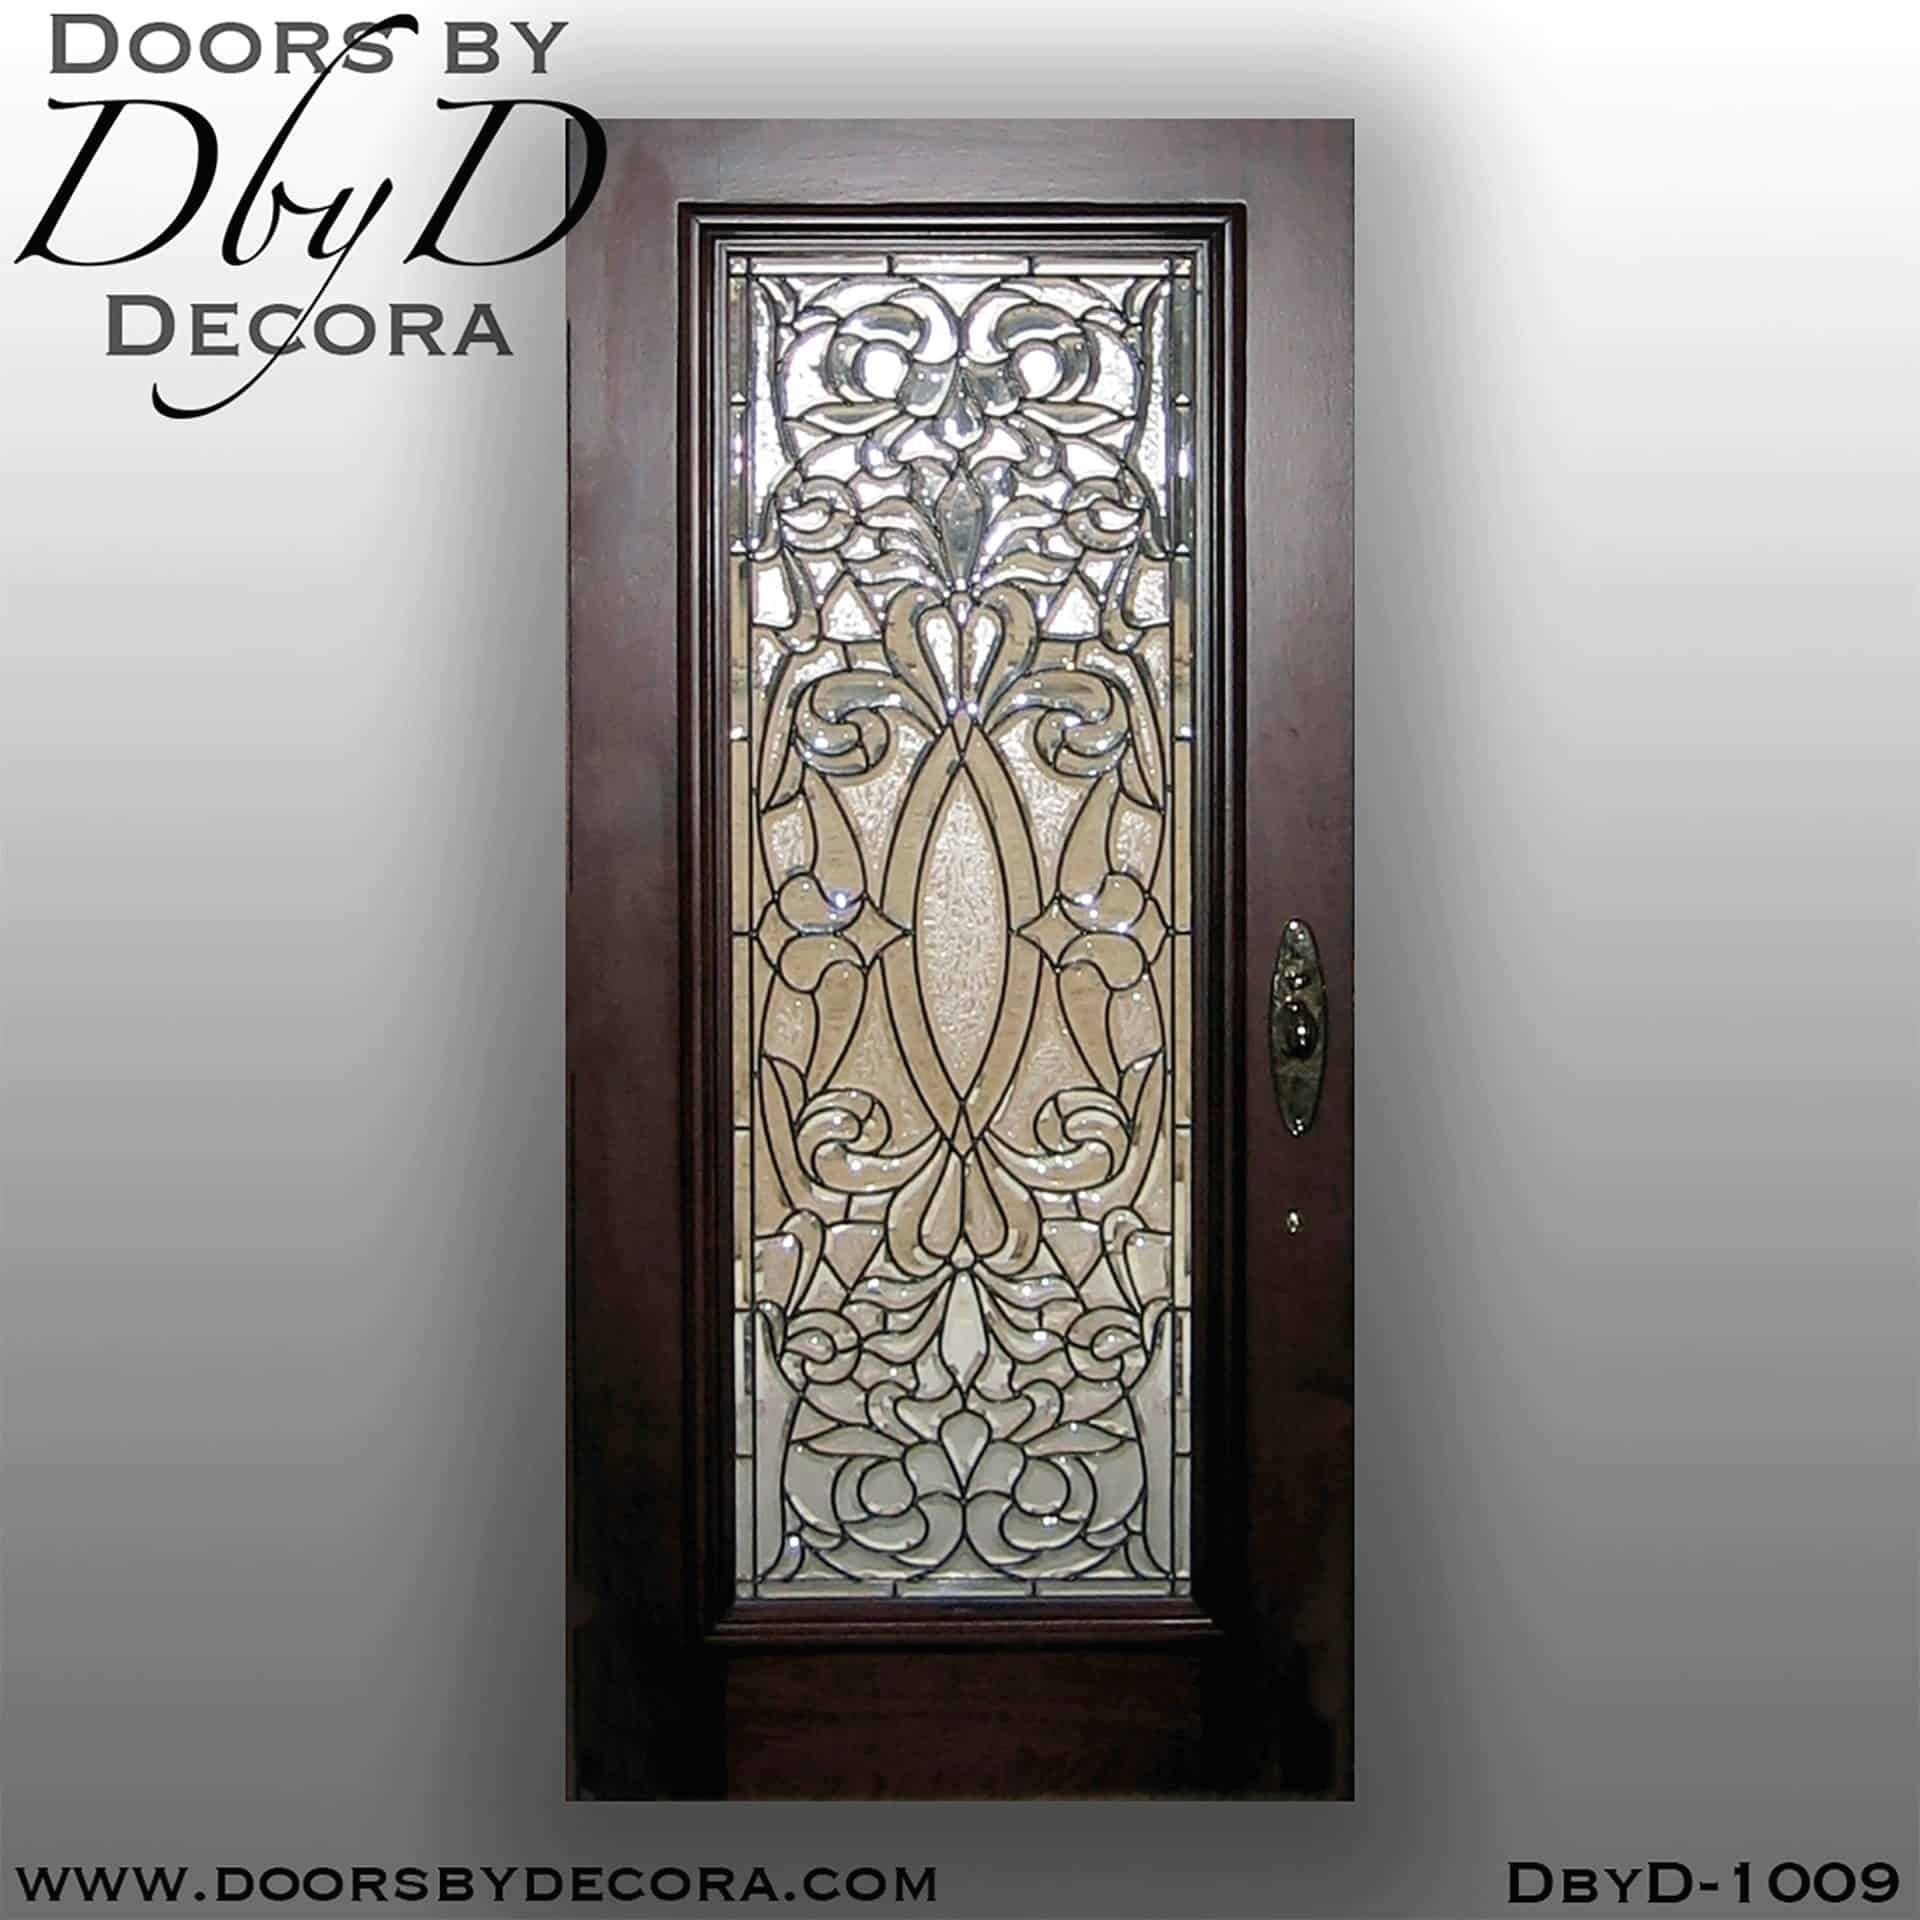 Custom Leaded Glass Front Door Solid Wood Entry Doors By Decora 1000 In 2020 Solid Wood Entry Doors Wood Entry Doors Solid Wood Front Door